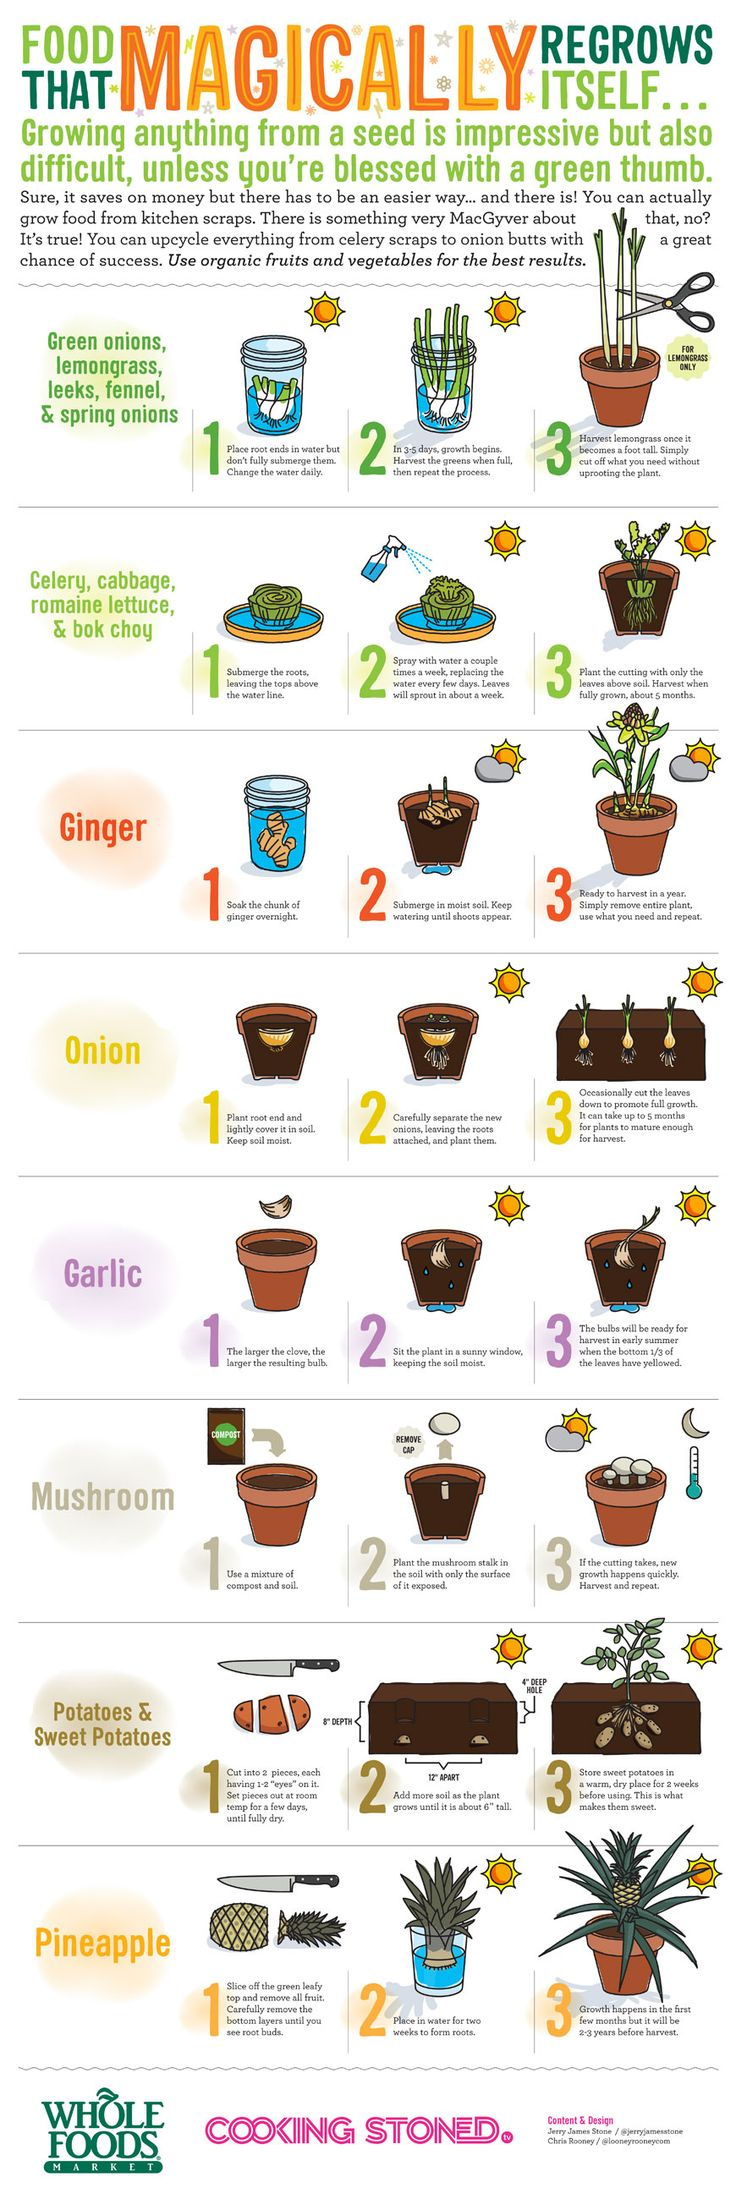 Growing veggies from kitchen to garden